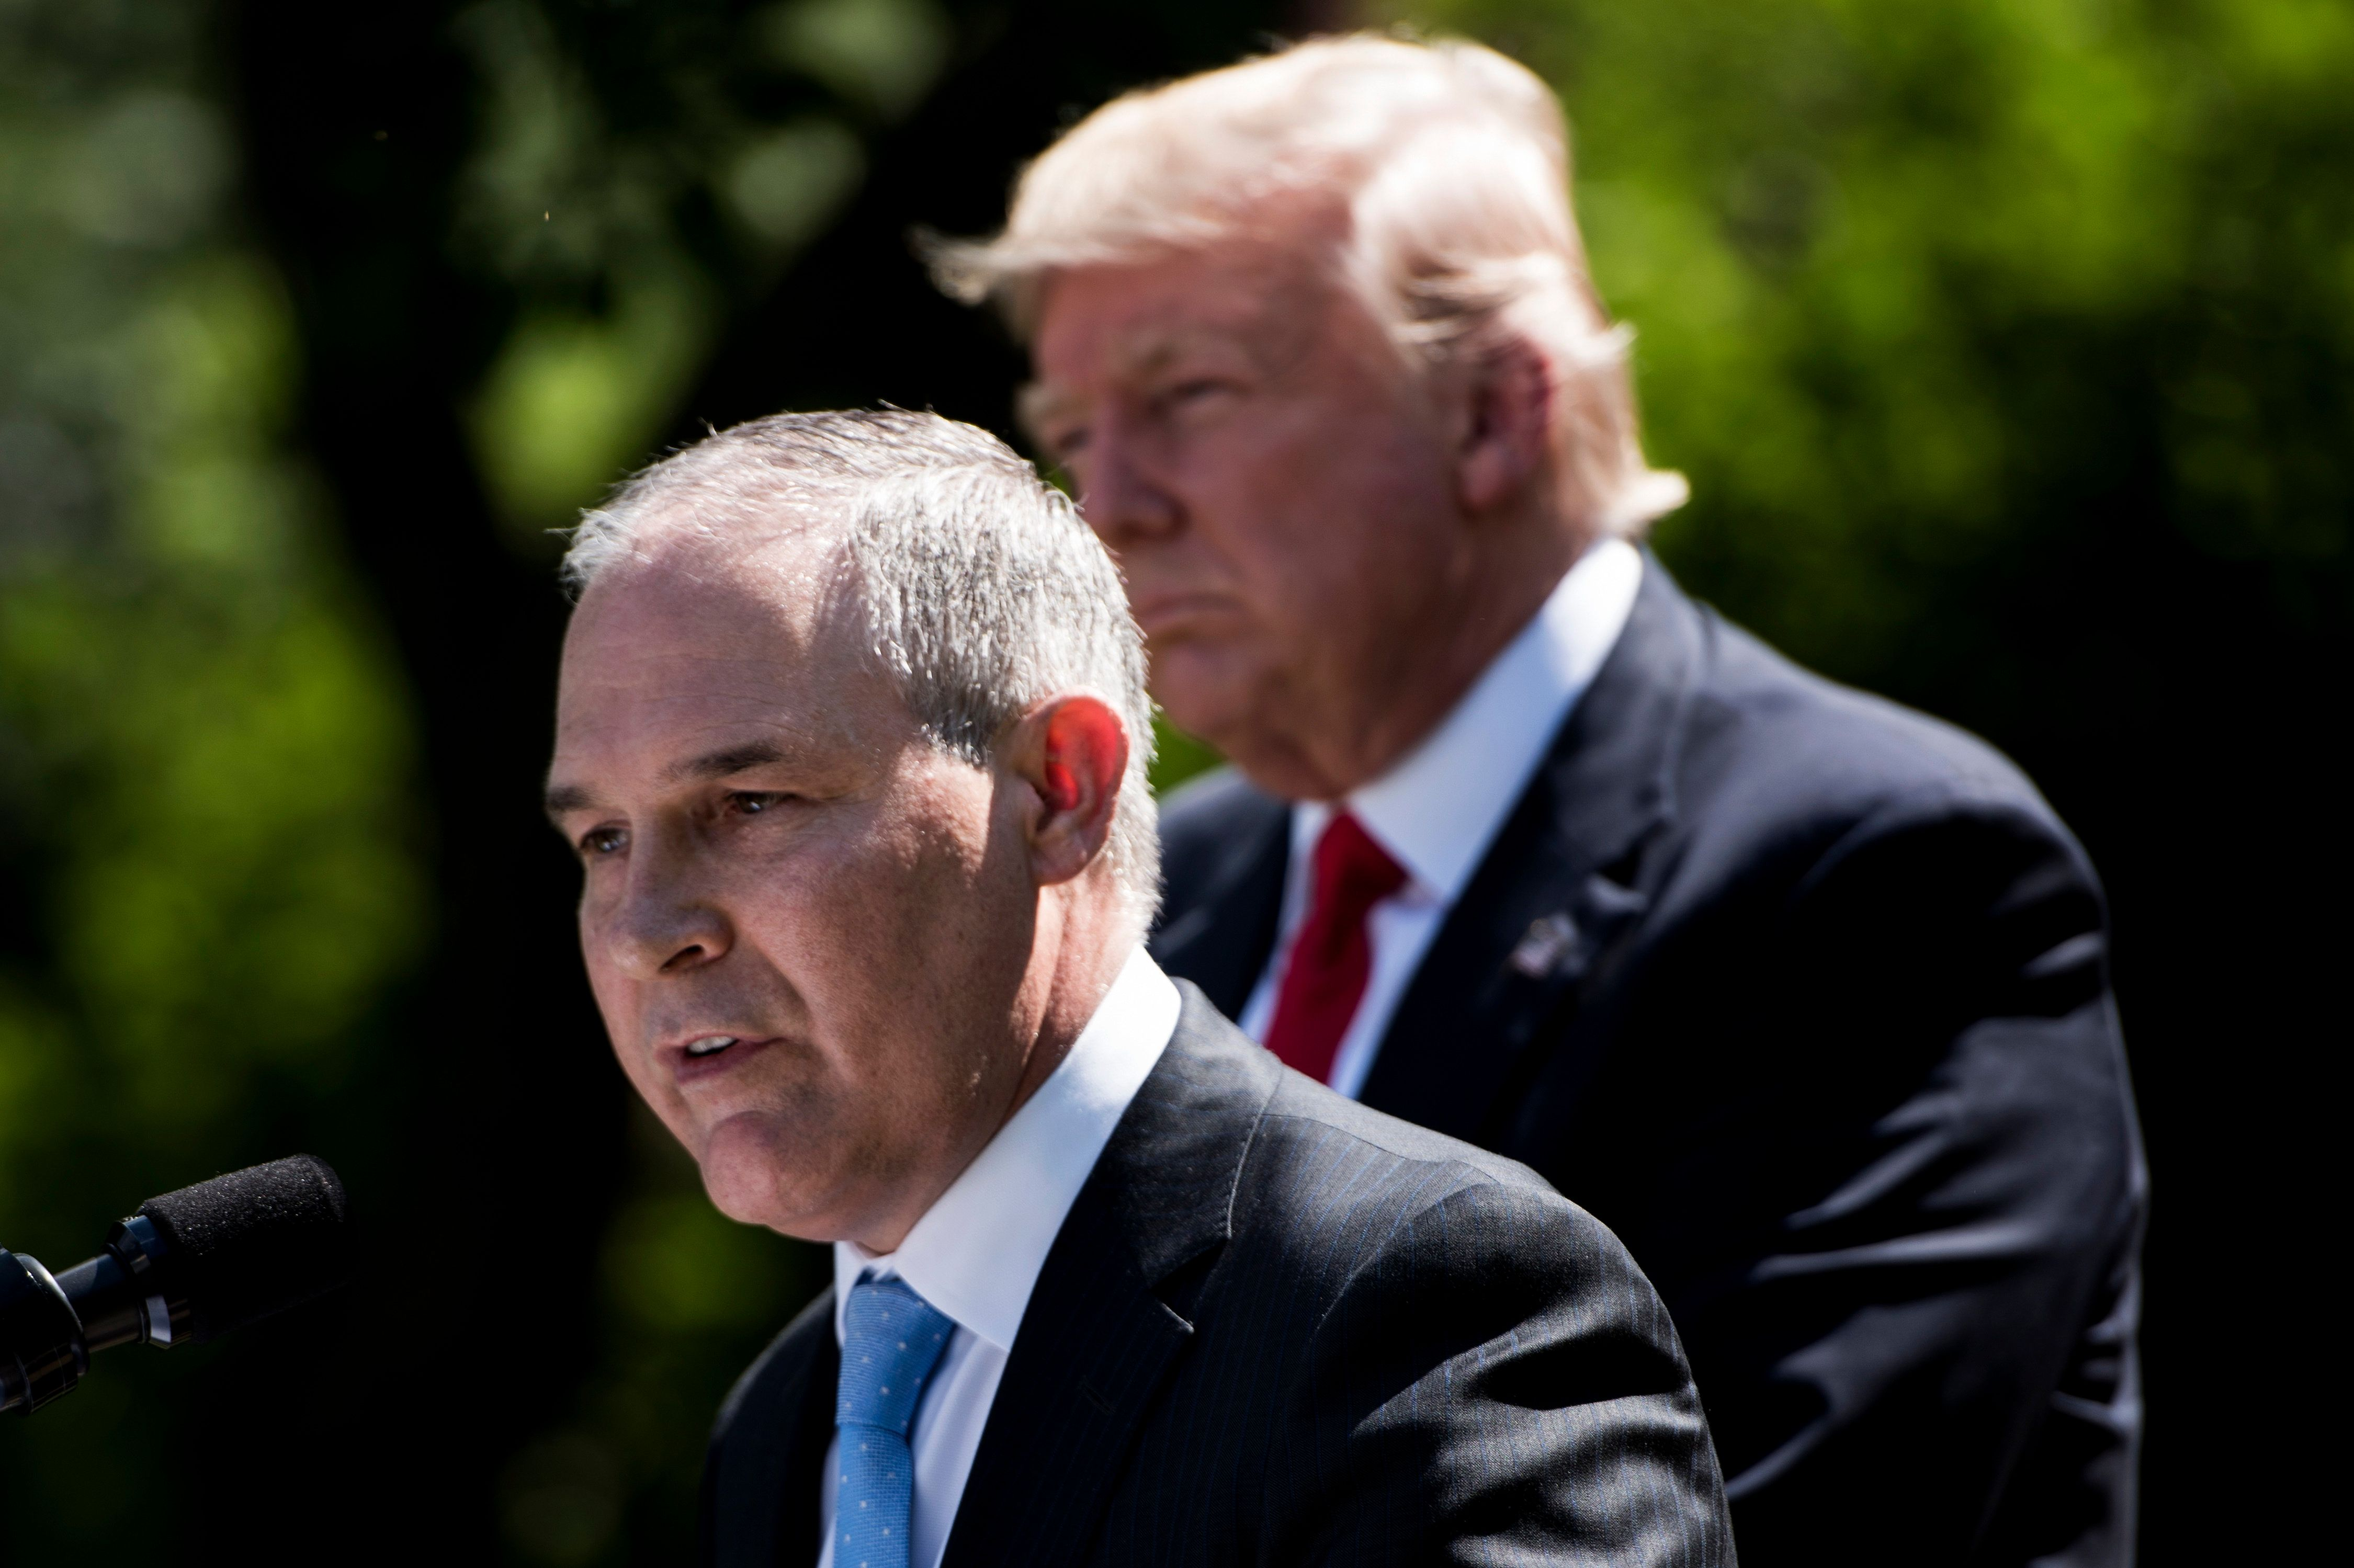 US President Donald Trump (R) listens while Environmental Protection Agency Administrator Scott Pruitt speaks after announcing the US will withdraw from the Paris accord in the Rose Garden of the White House June 1, 2017 in Washington, DC. 'As of today, the United States will cease all implementation of the non-binding Paris accord and the draconian financial and economic burdens the agreement imposes on our country,' Trump said. / AFP PHOTO / Brendan Smialowski        (Photo credit should read BRENDAN SMIALOWSKI/AFP/Getty Images)